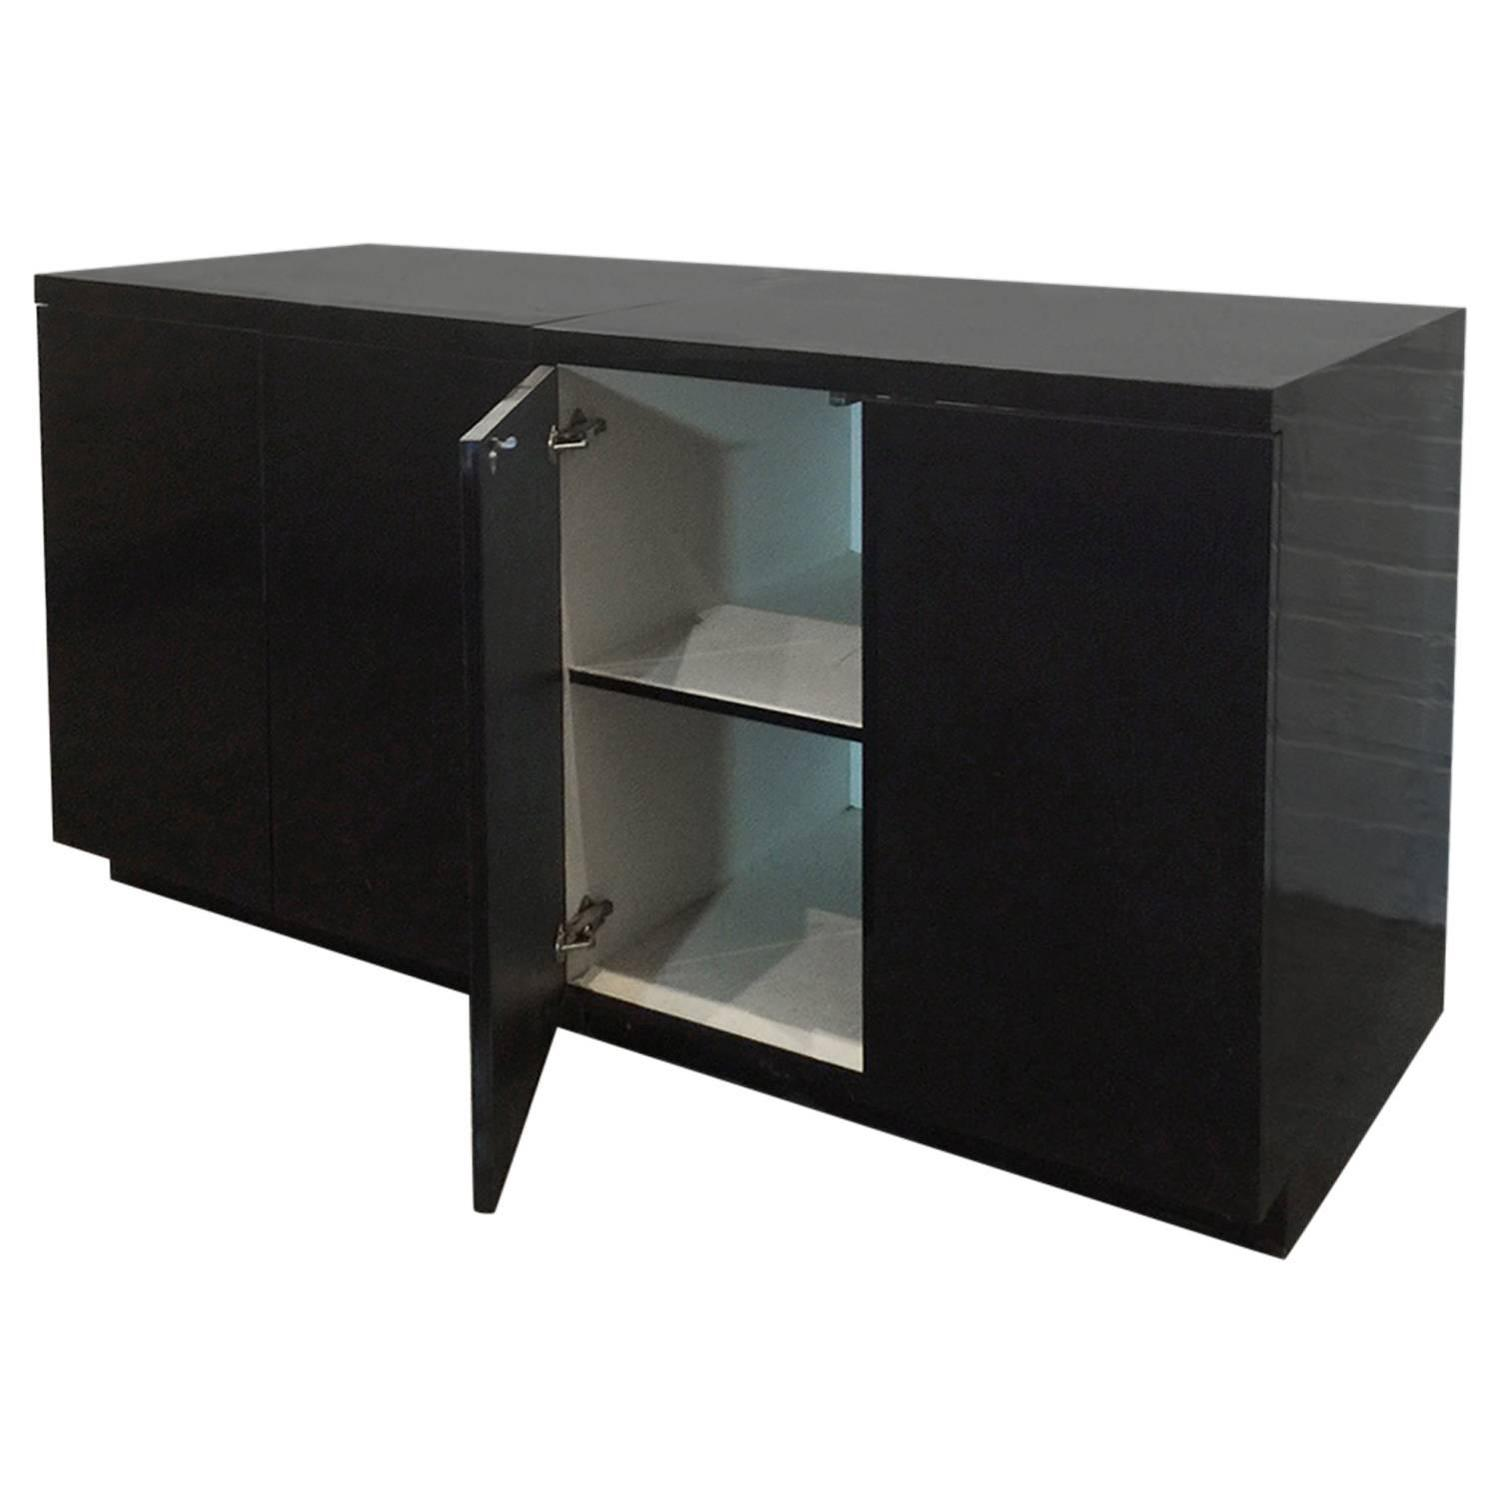 Formica Kitchen Cabinet: Two Sleek Black Formica Storage Cabinets For Sale At 1stdibs